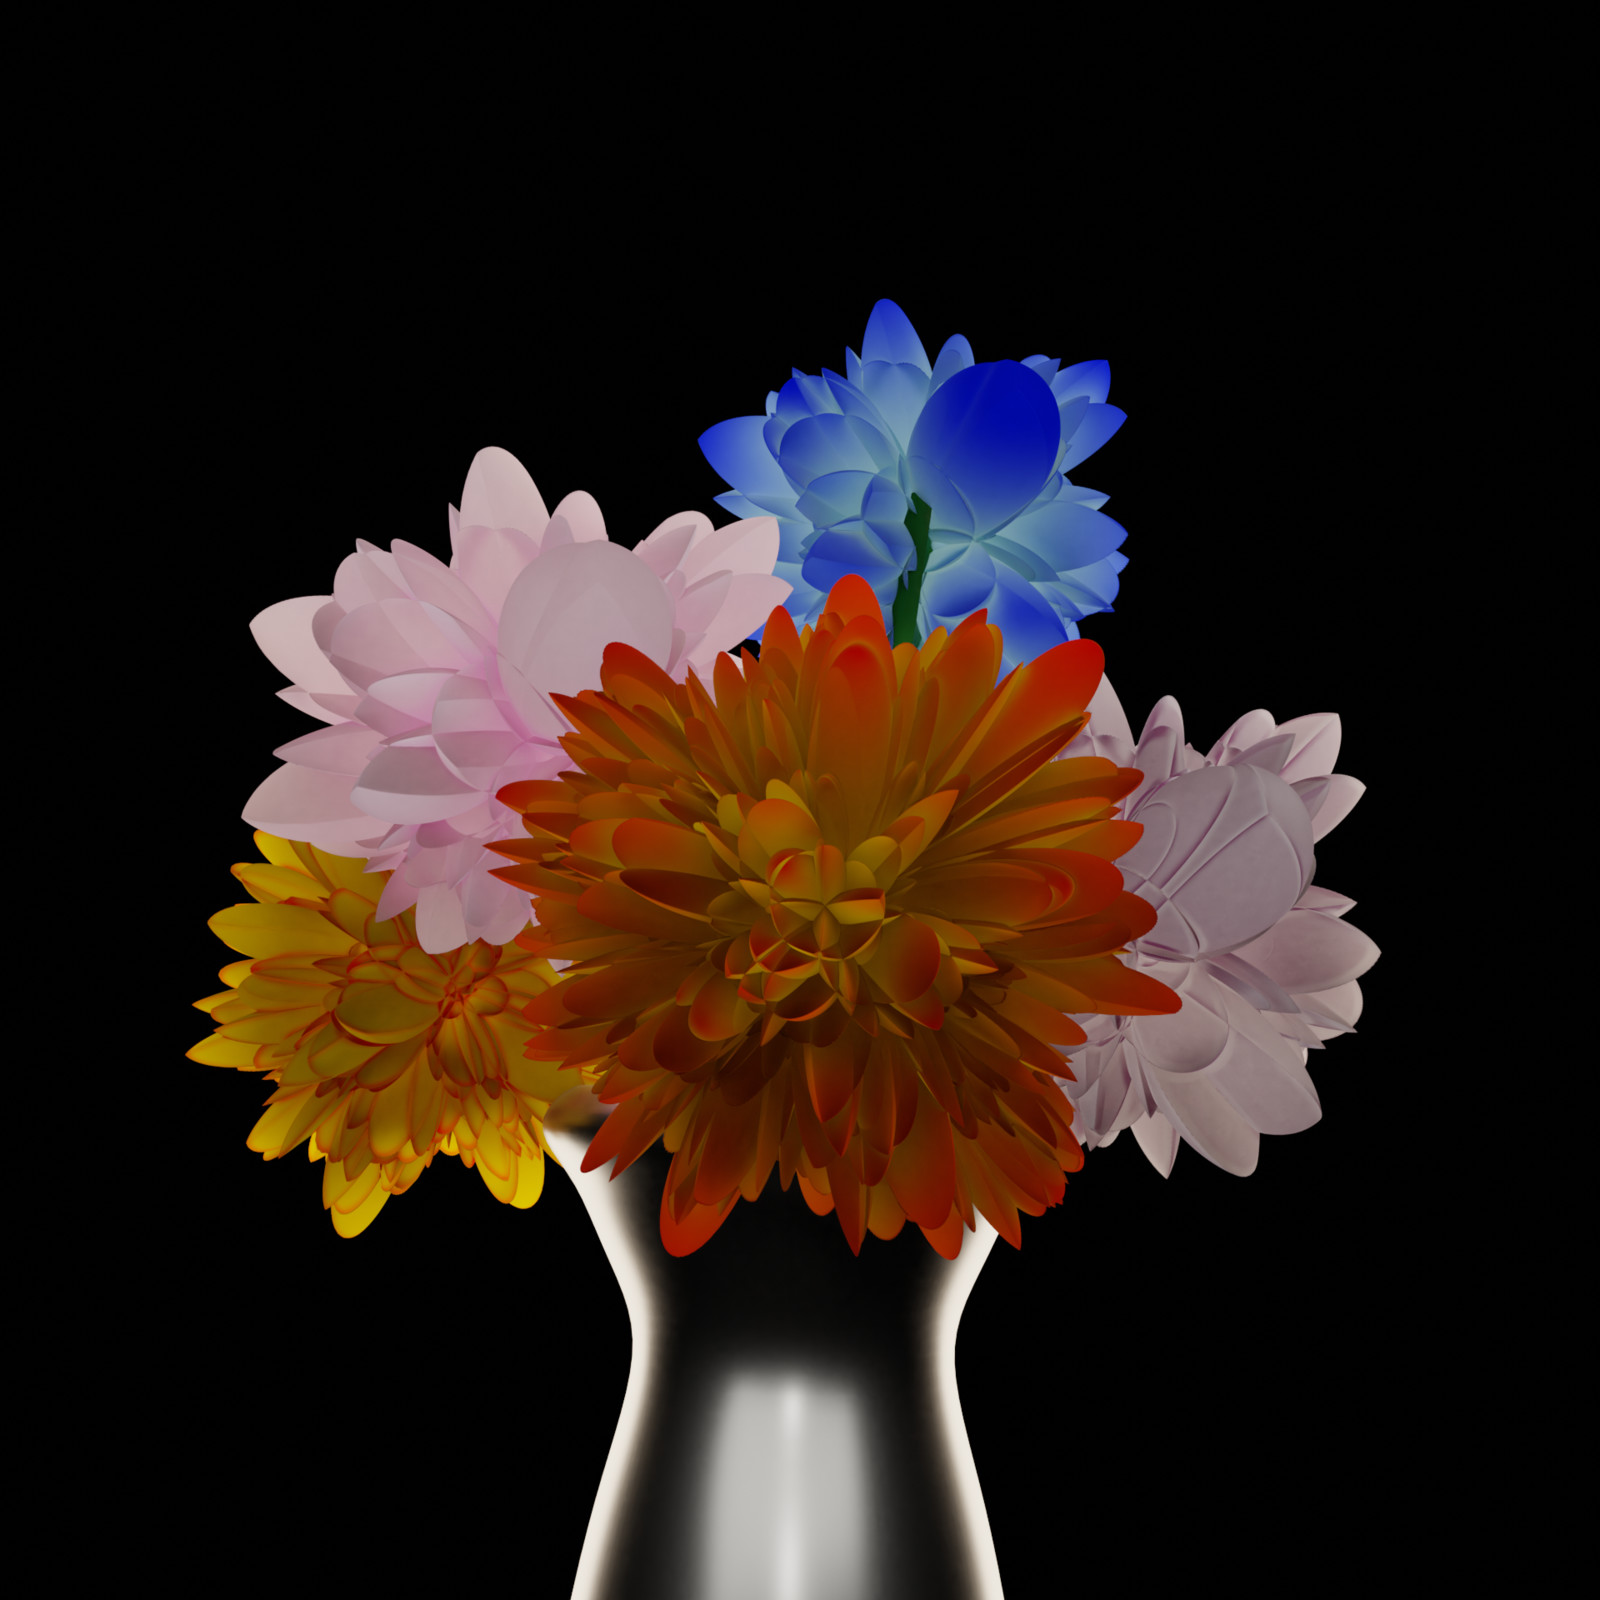 Displacement flowers